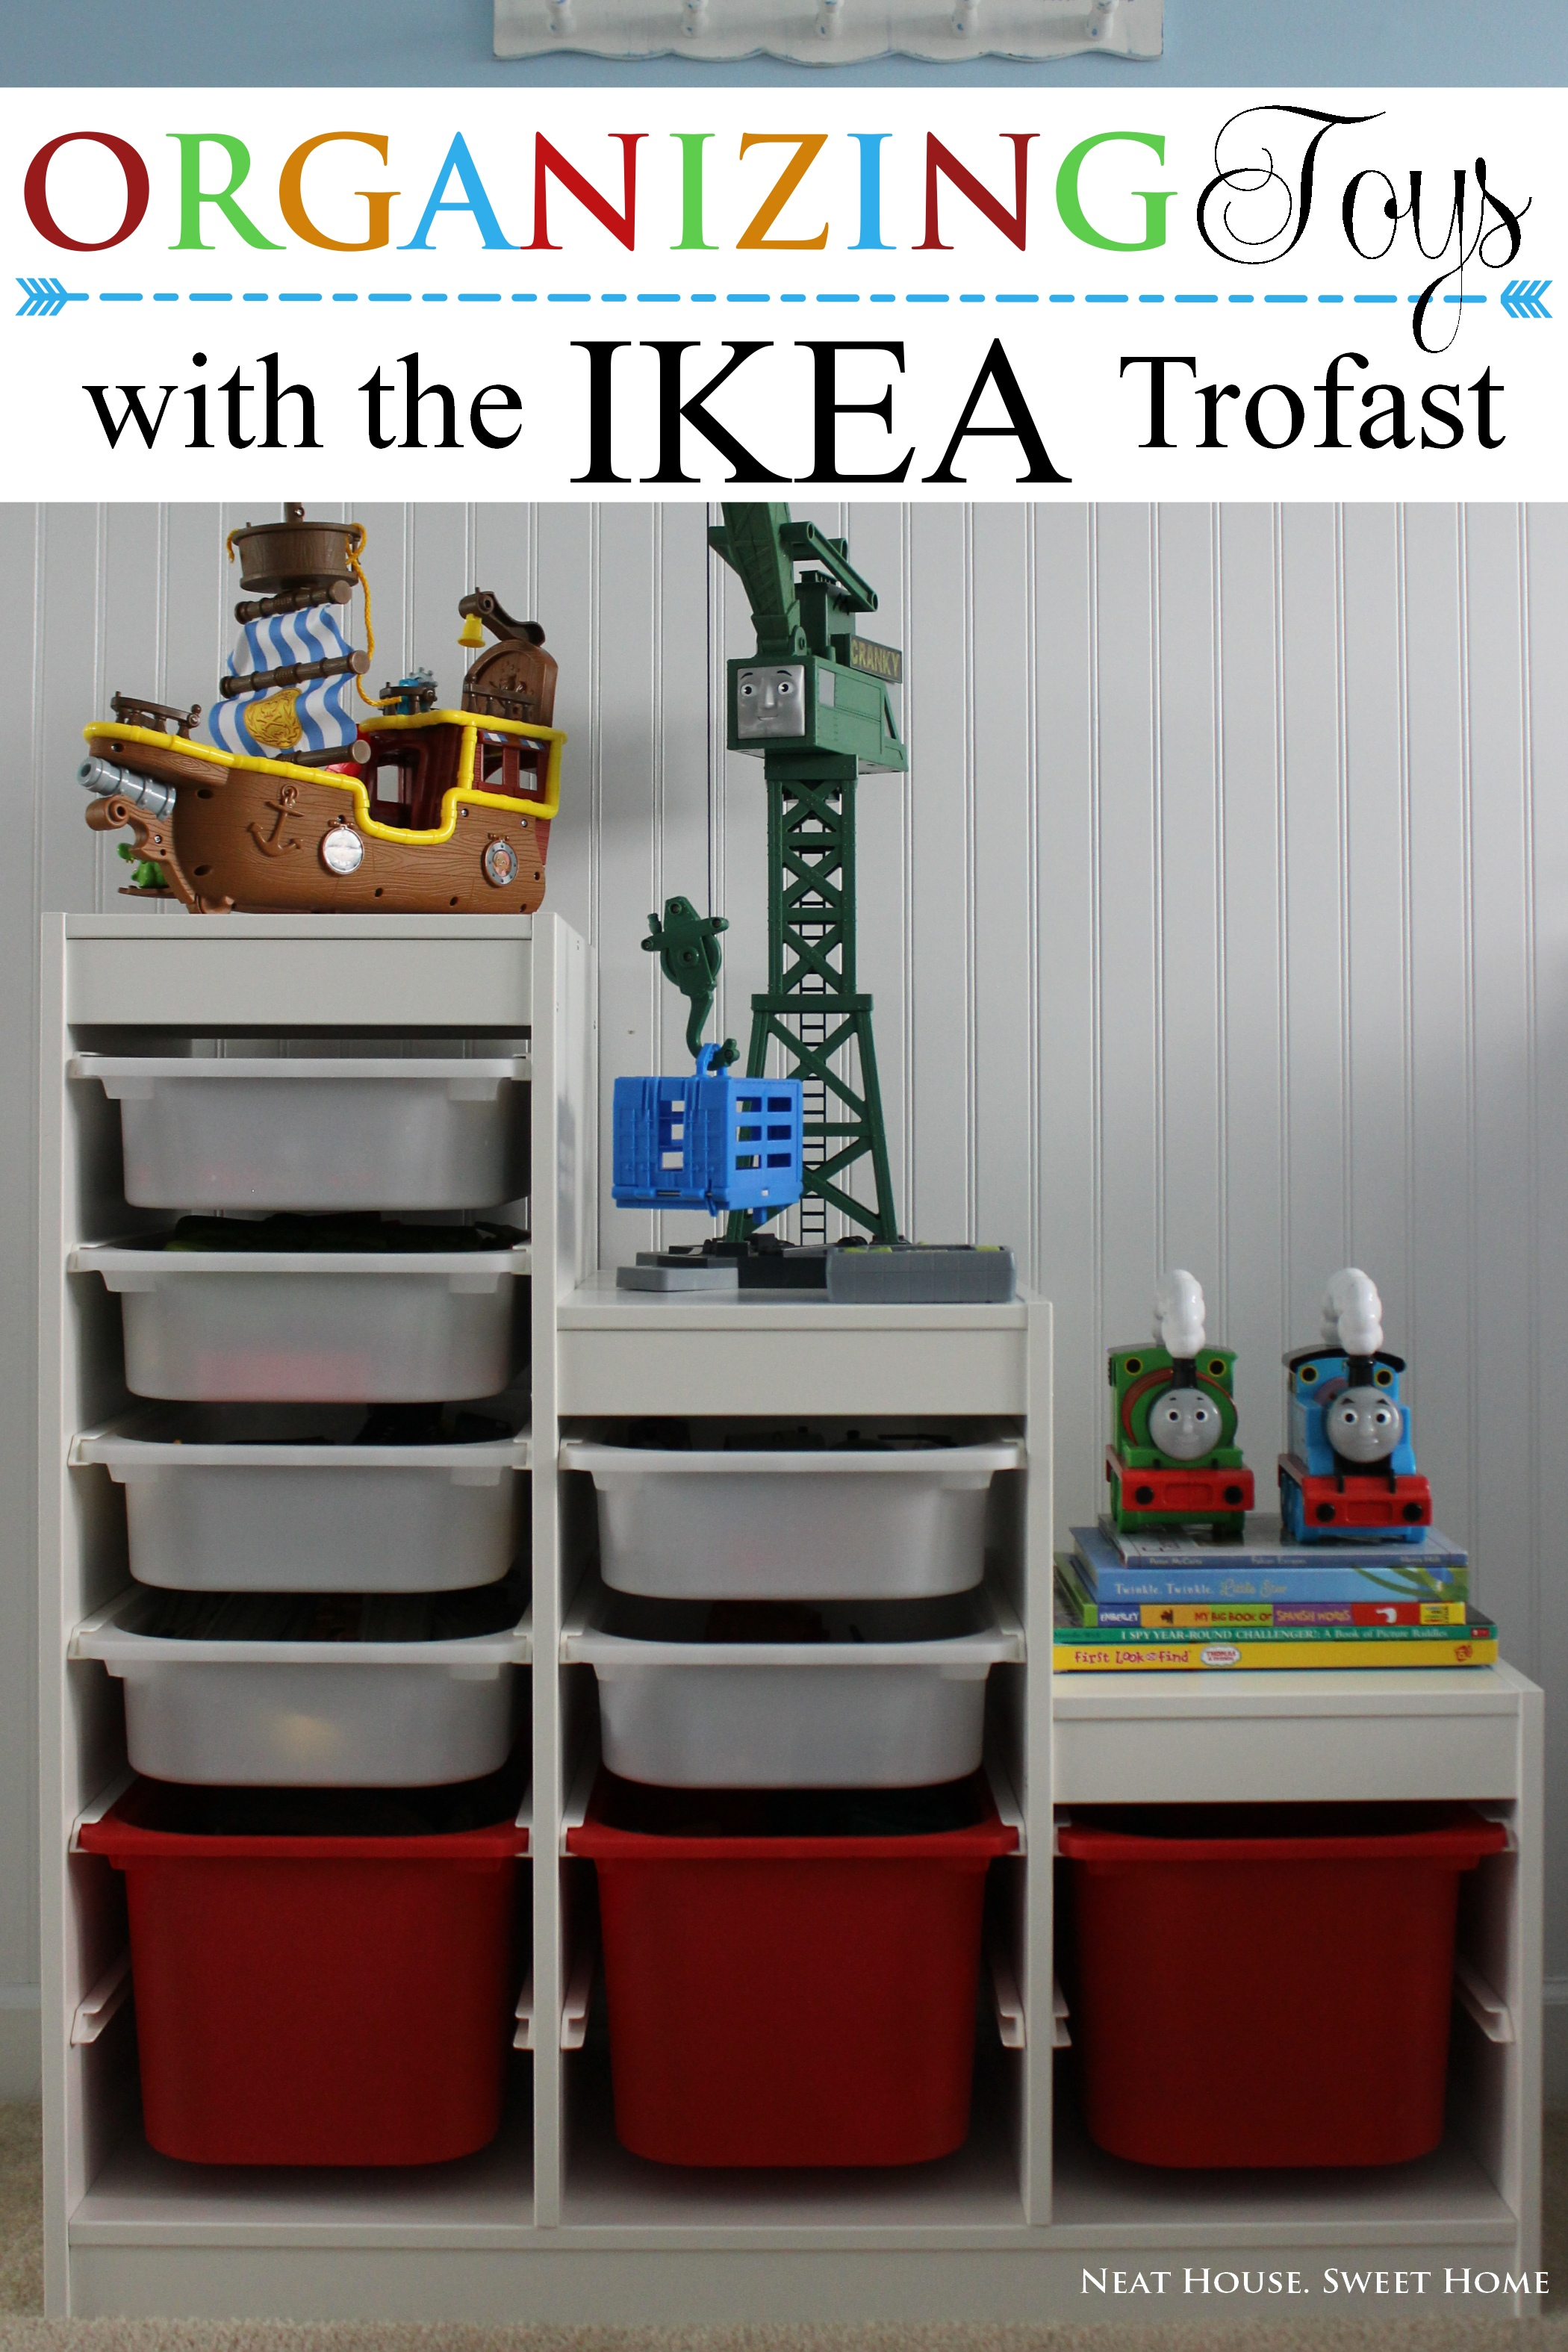 Trofast Ikea organization with ikea trofast and a tip neat house